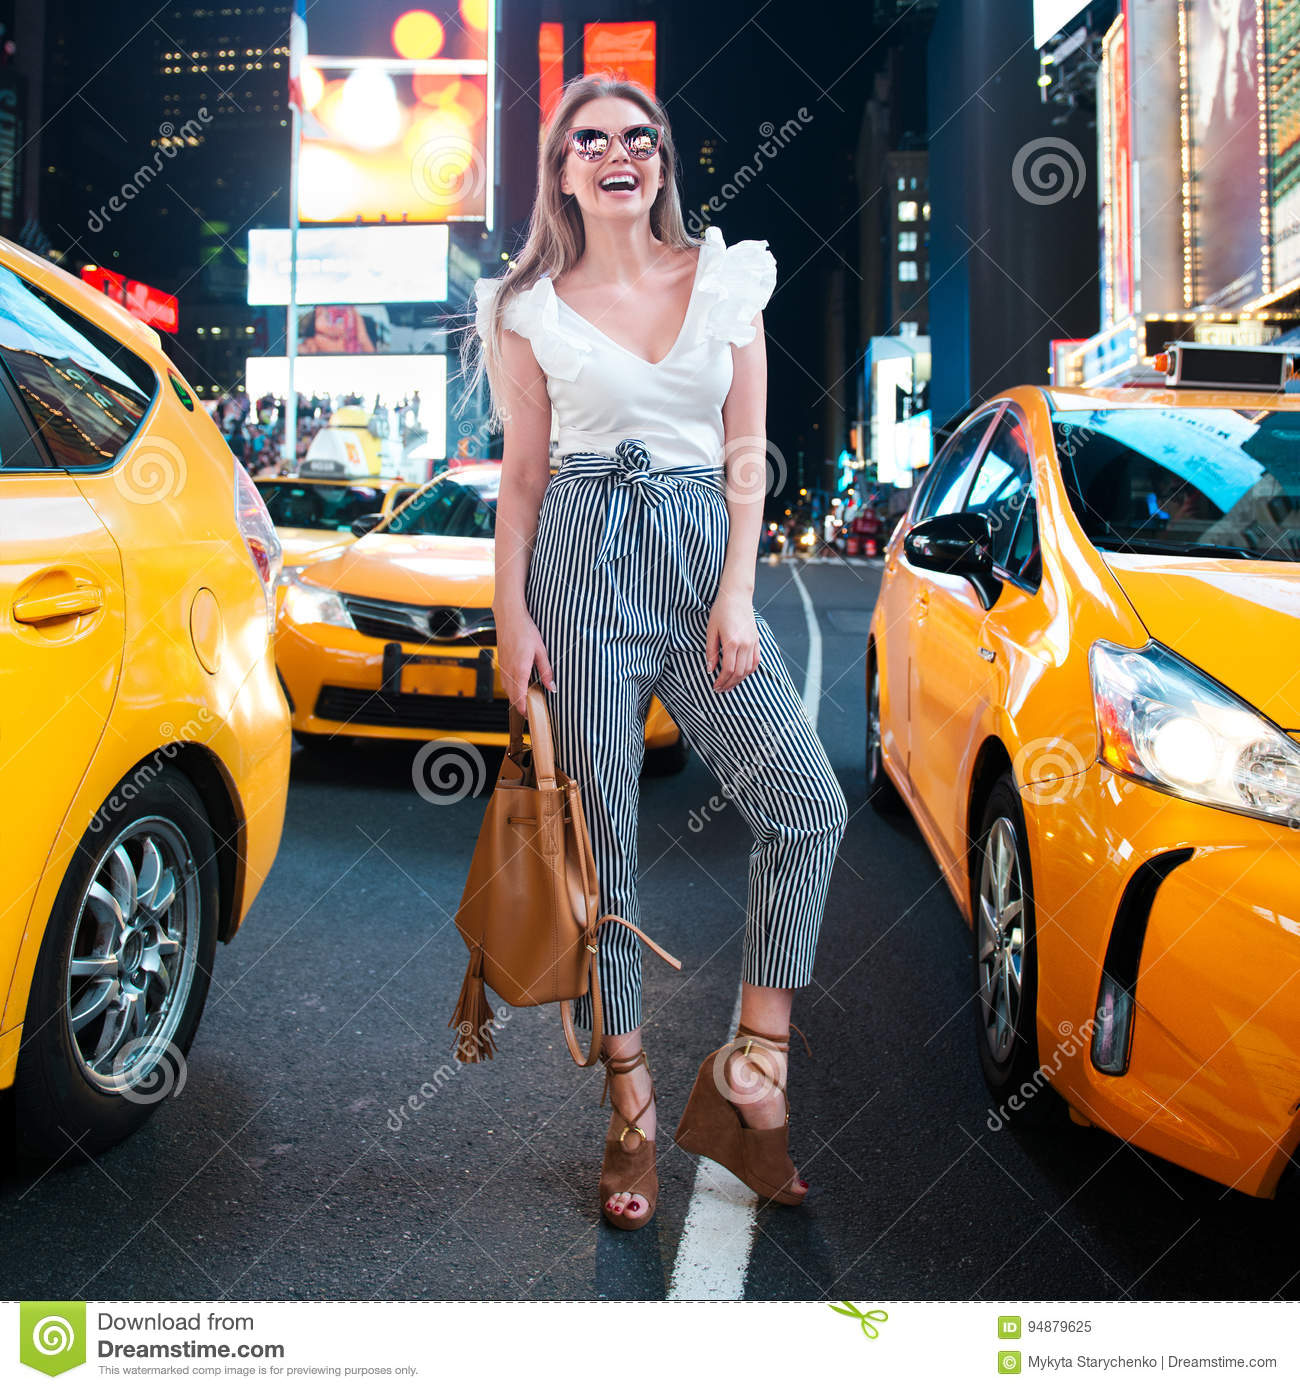 Happy woman with a bag in night New York City Times Square street enjoy the summer vacation and smiling with yellow taxi around.